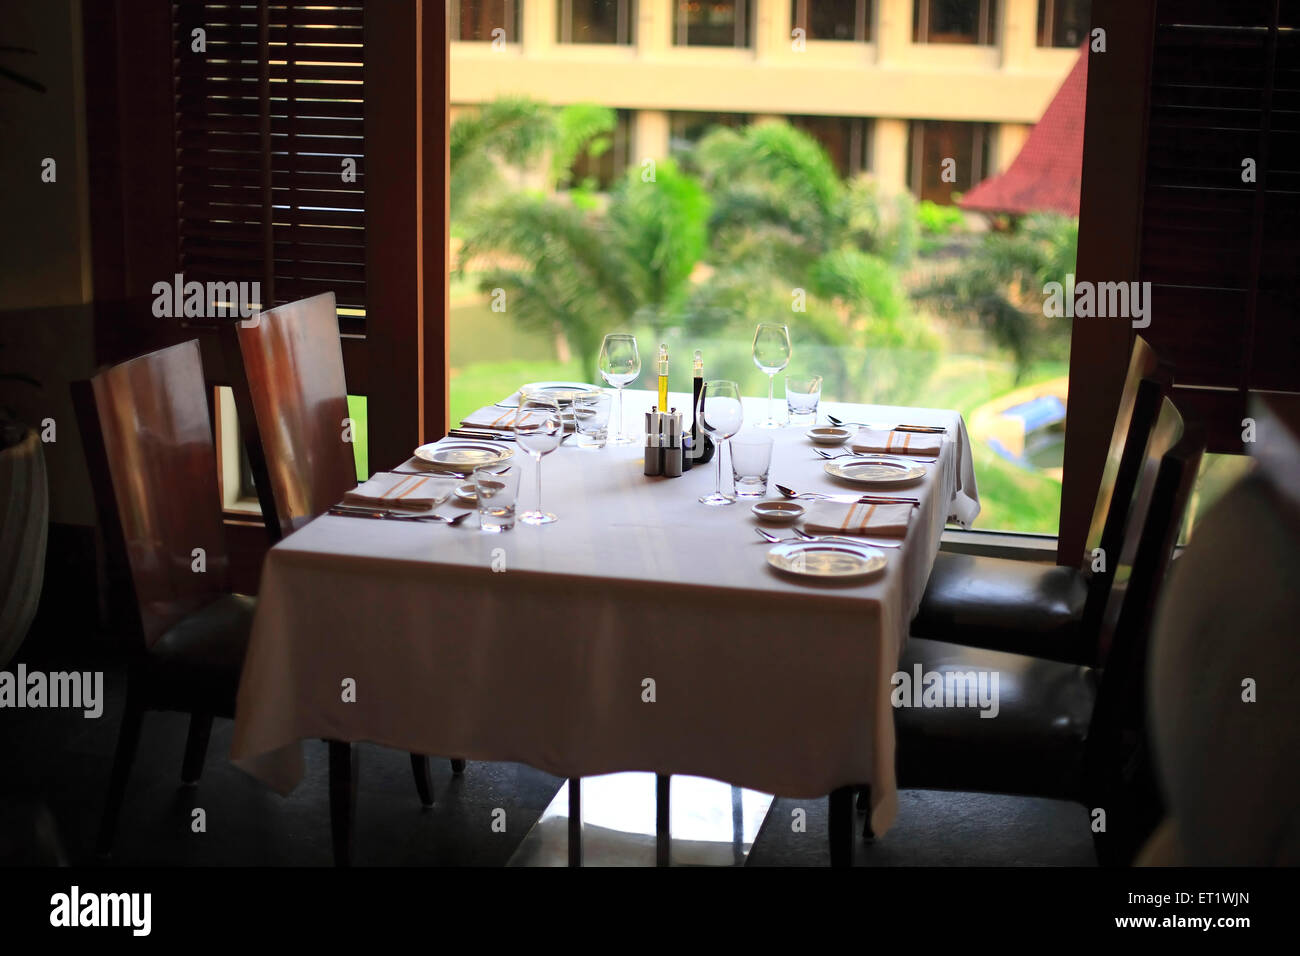 Dining table in hotel with cutlery ; Bombay Mumbai ; Maharashtra ; India - Stock Image